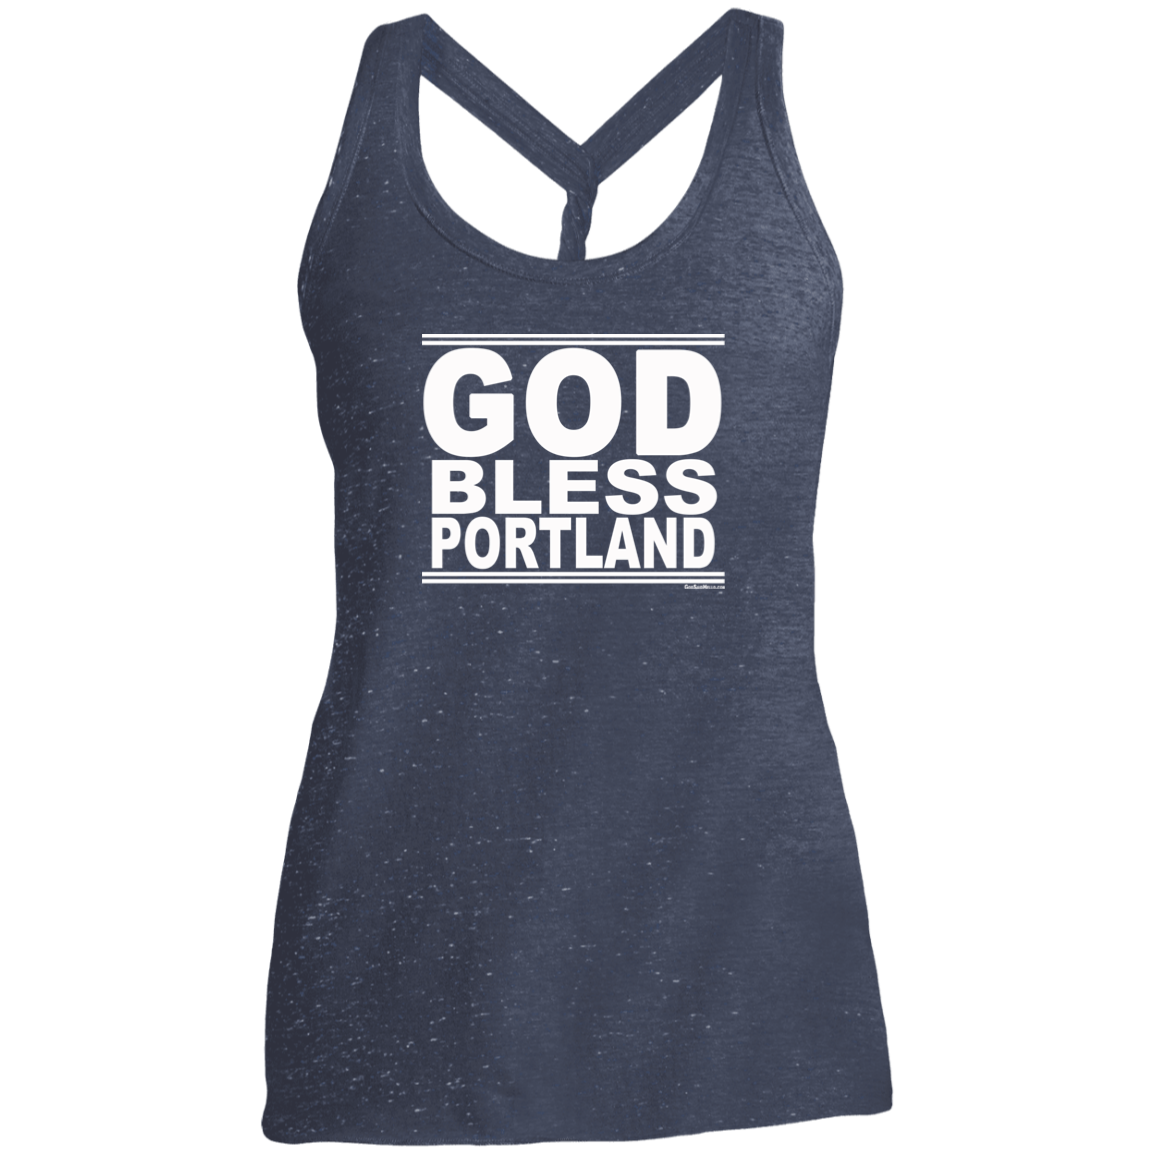 #GodBlessPortland - Women's Twist Back Tank Top